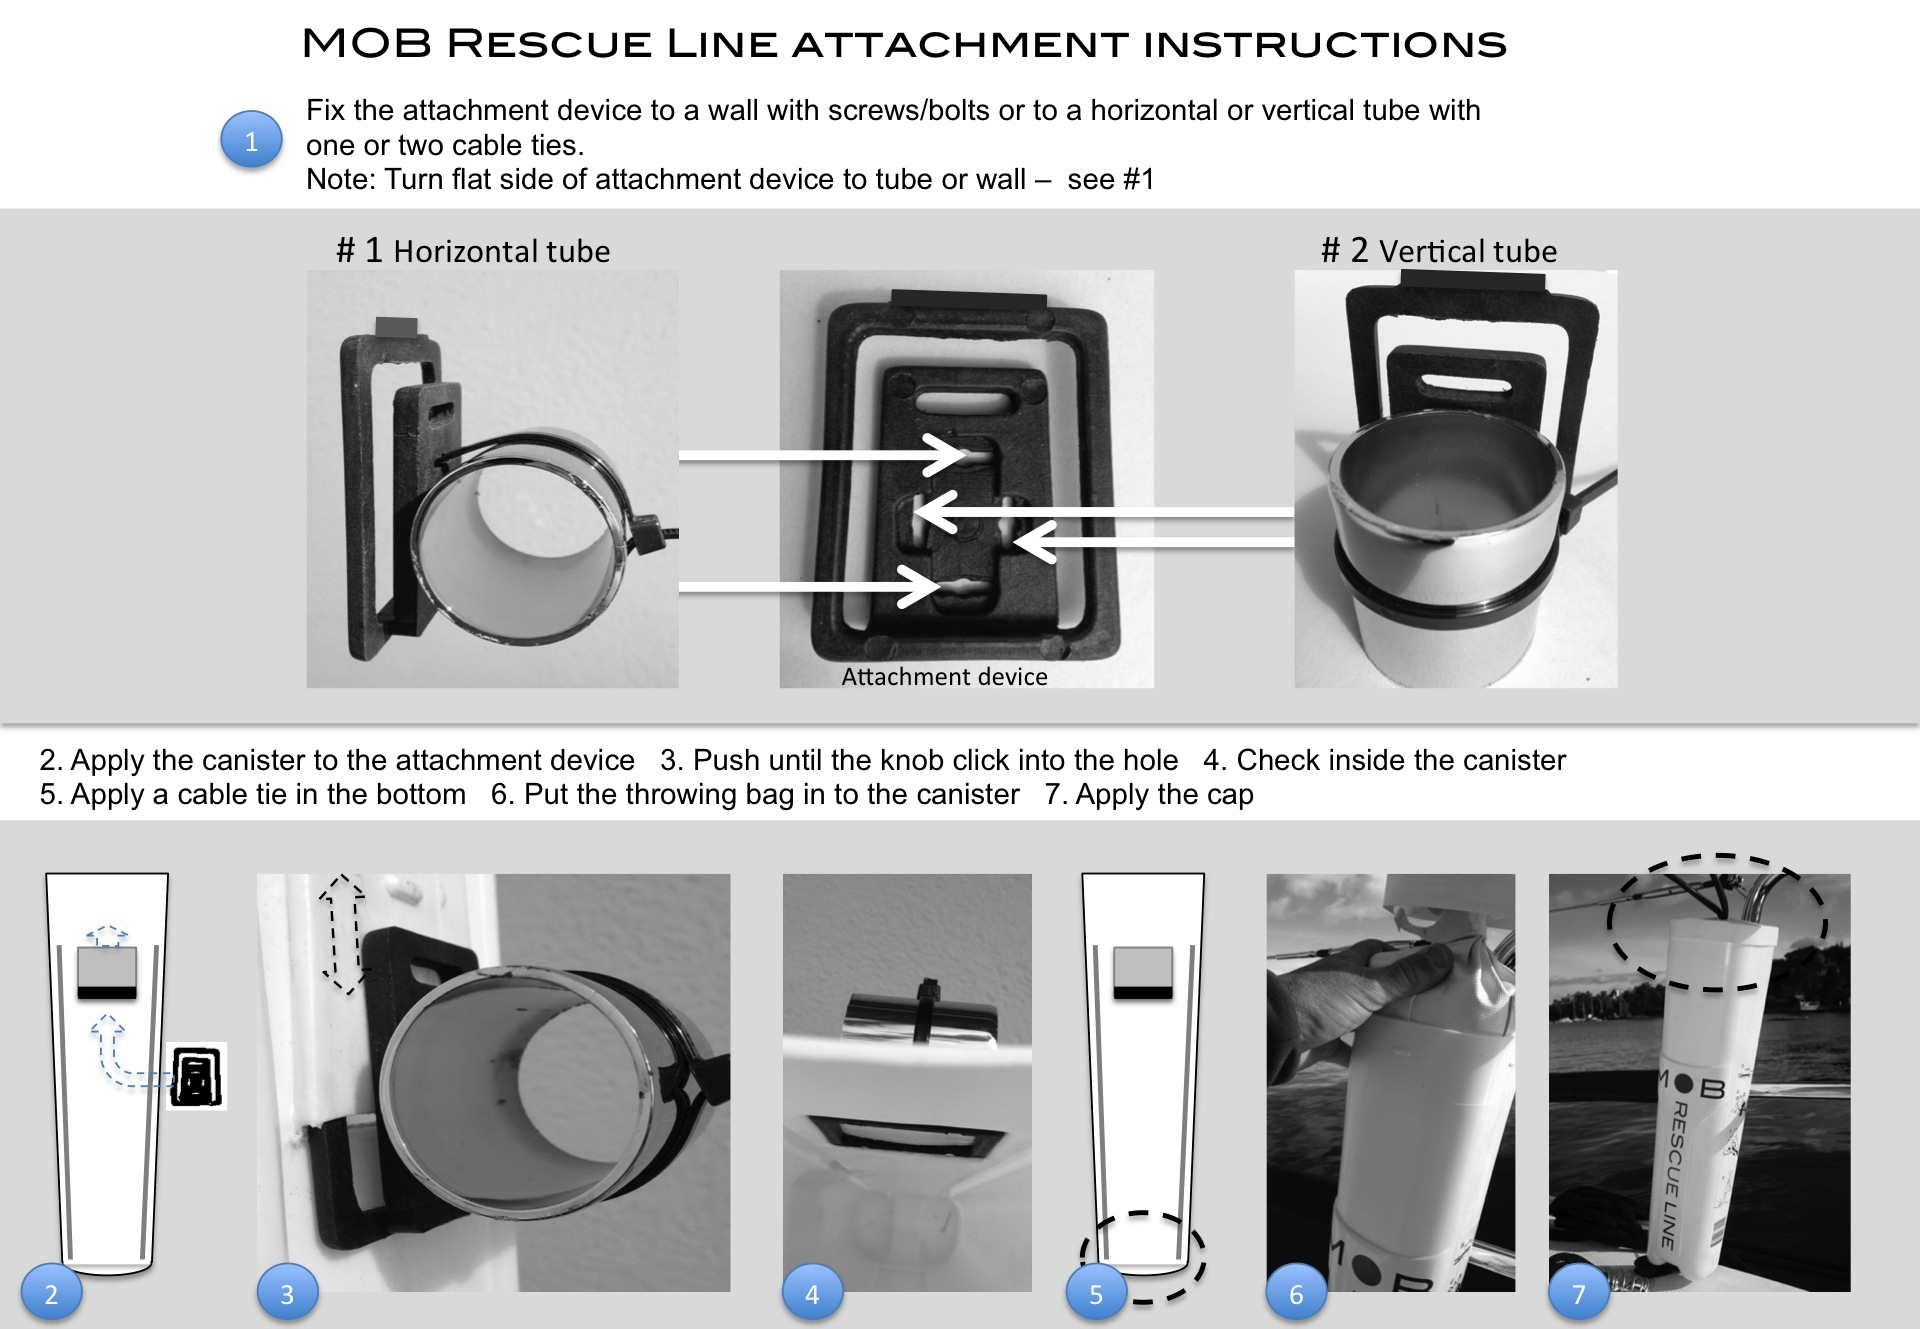 Attachment instructions